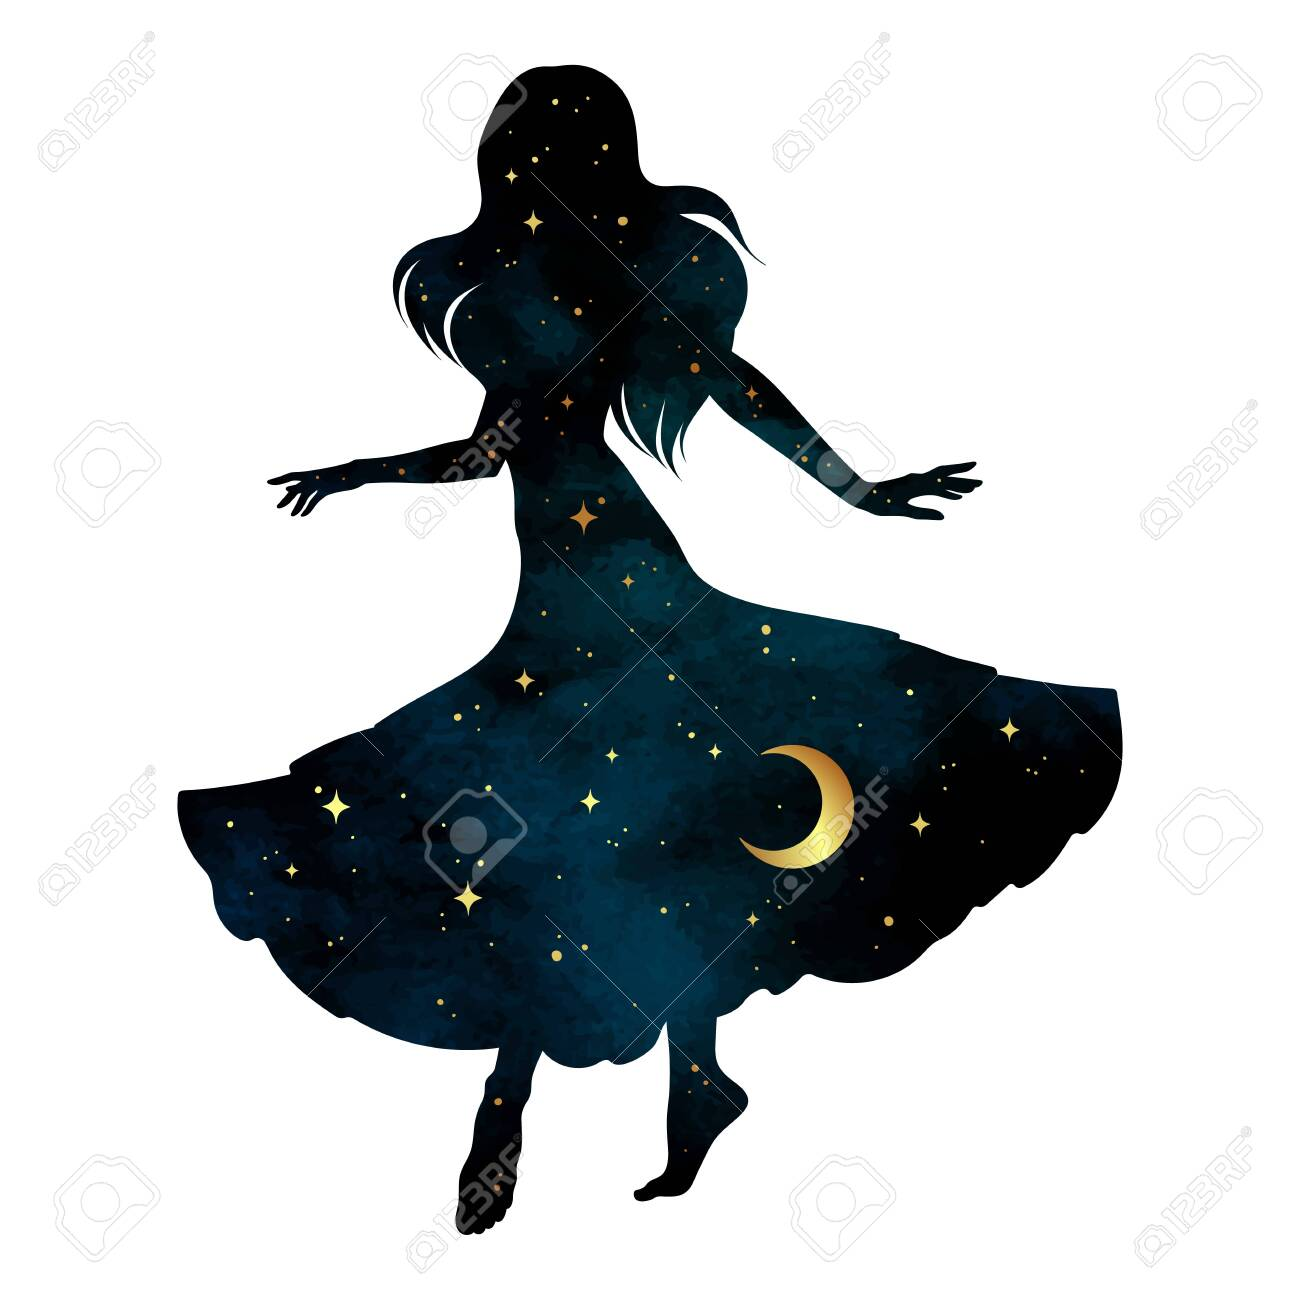 Beautiful dancing gypsy silhouette with crescent moon and stars isolated. Boho chic tattoo, sticker or print design vector illustration - 147978543